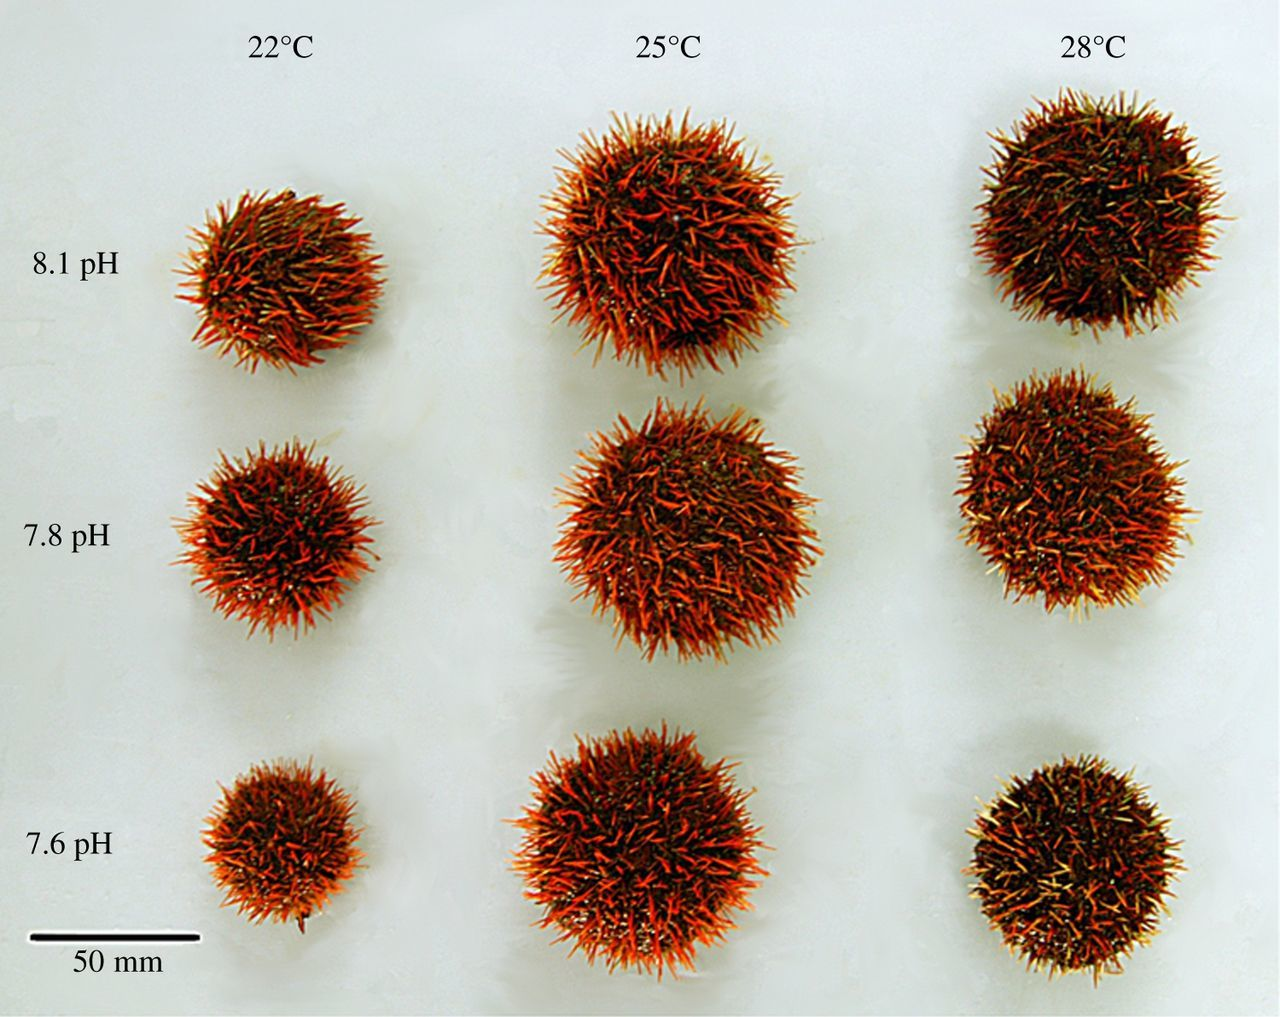 Impacts Of Ocean Acidification On Sea Urchin Growth Across